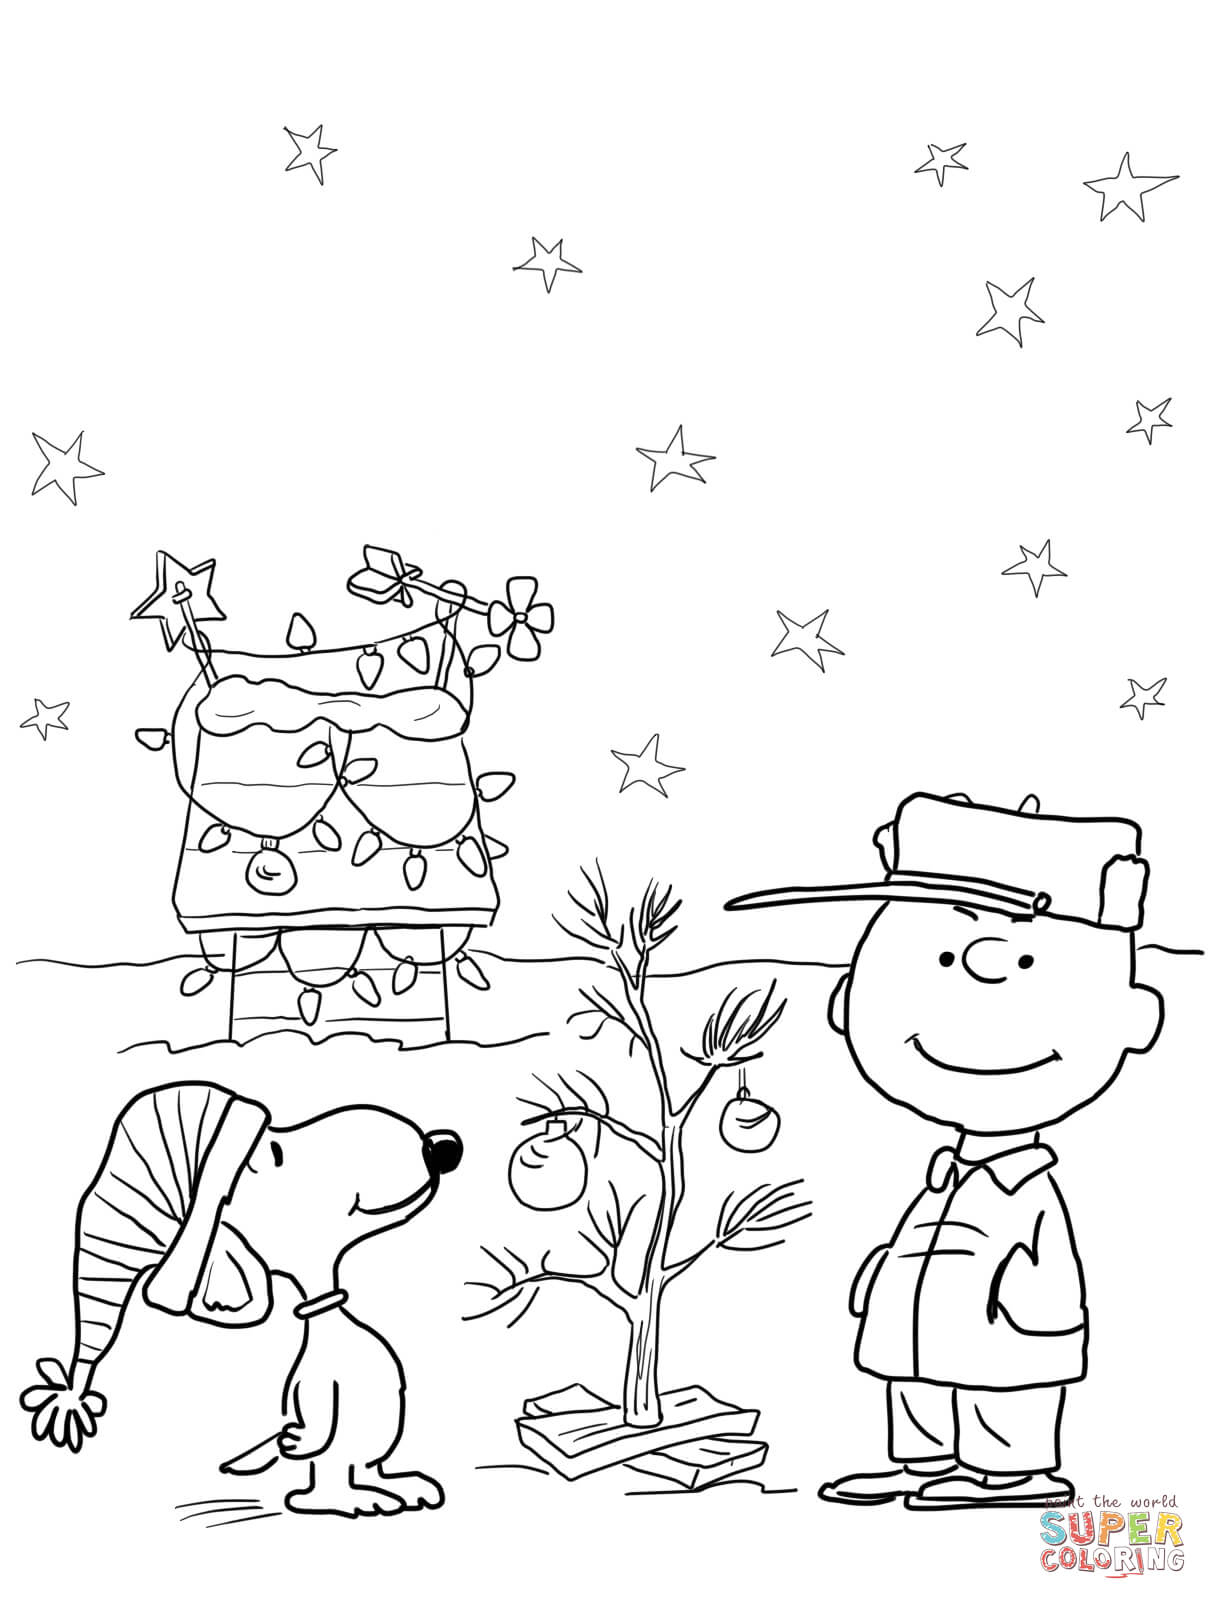 Charlie Brown Halloween Coloring Page   Free Printable Coloring Pages - Free Printable Charlie Brown Halloween Coloring Pages